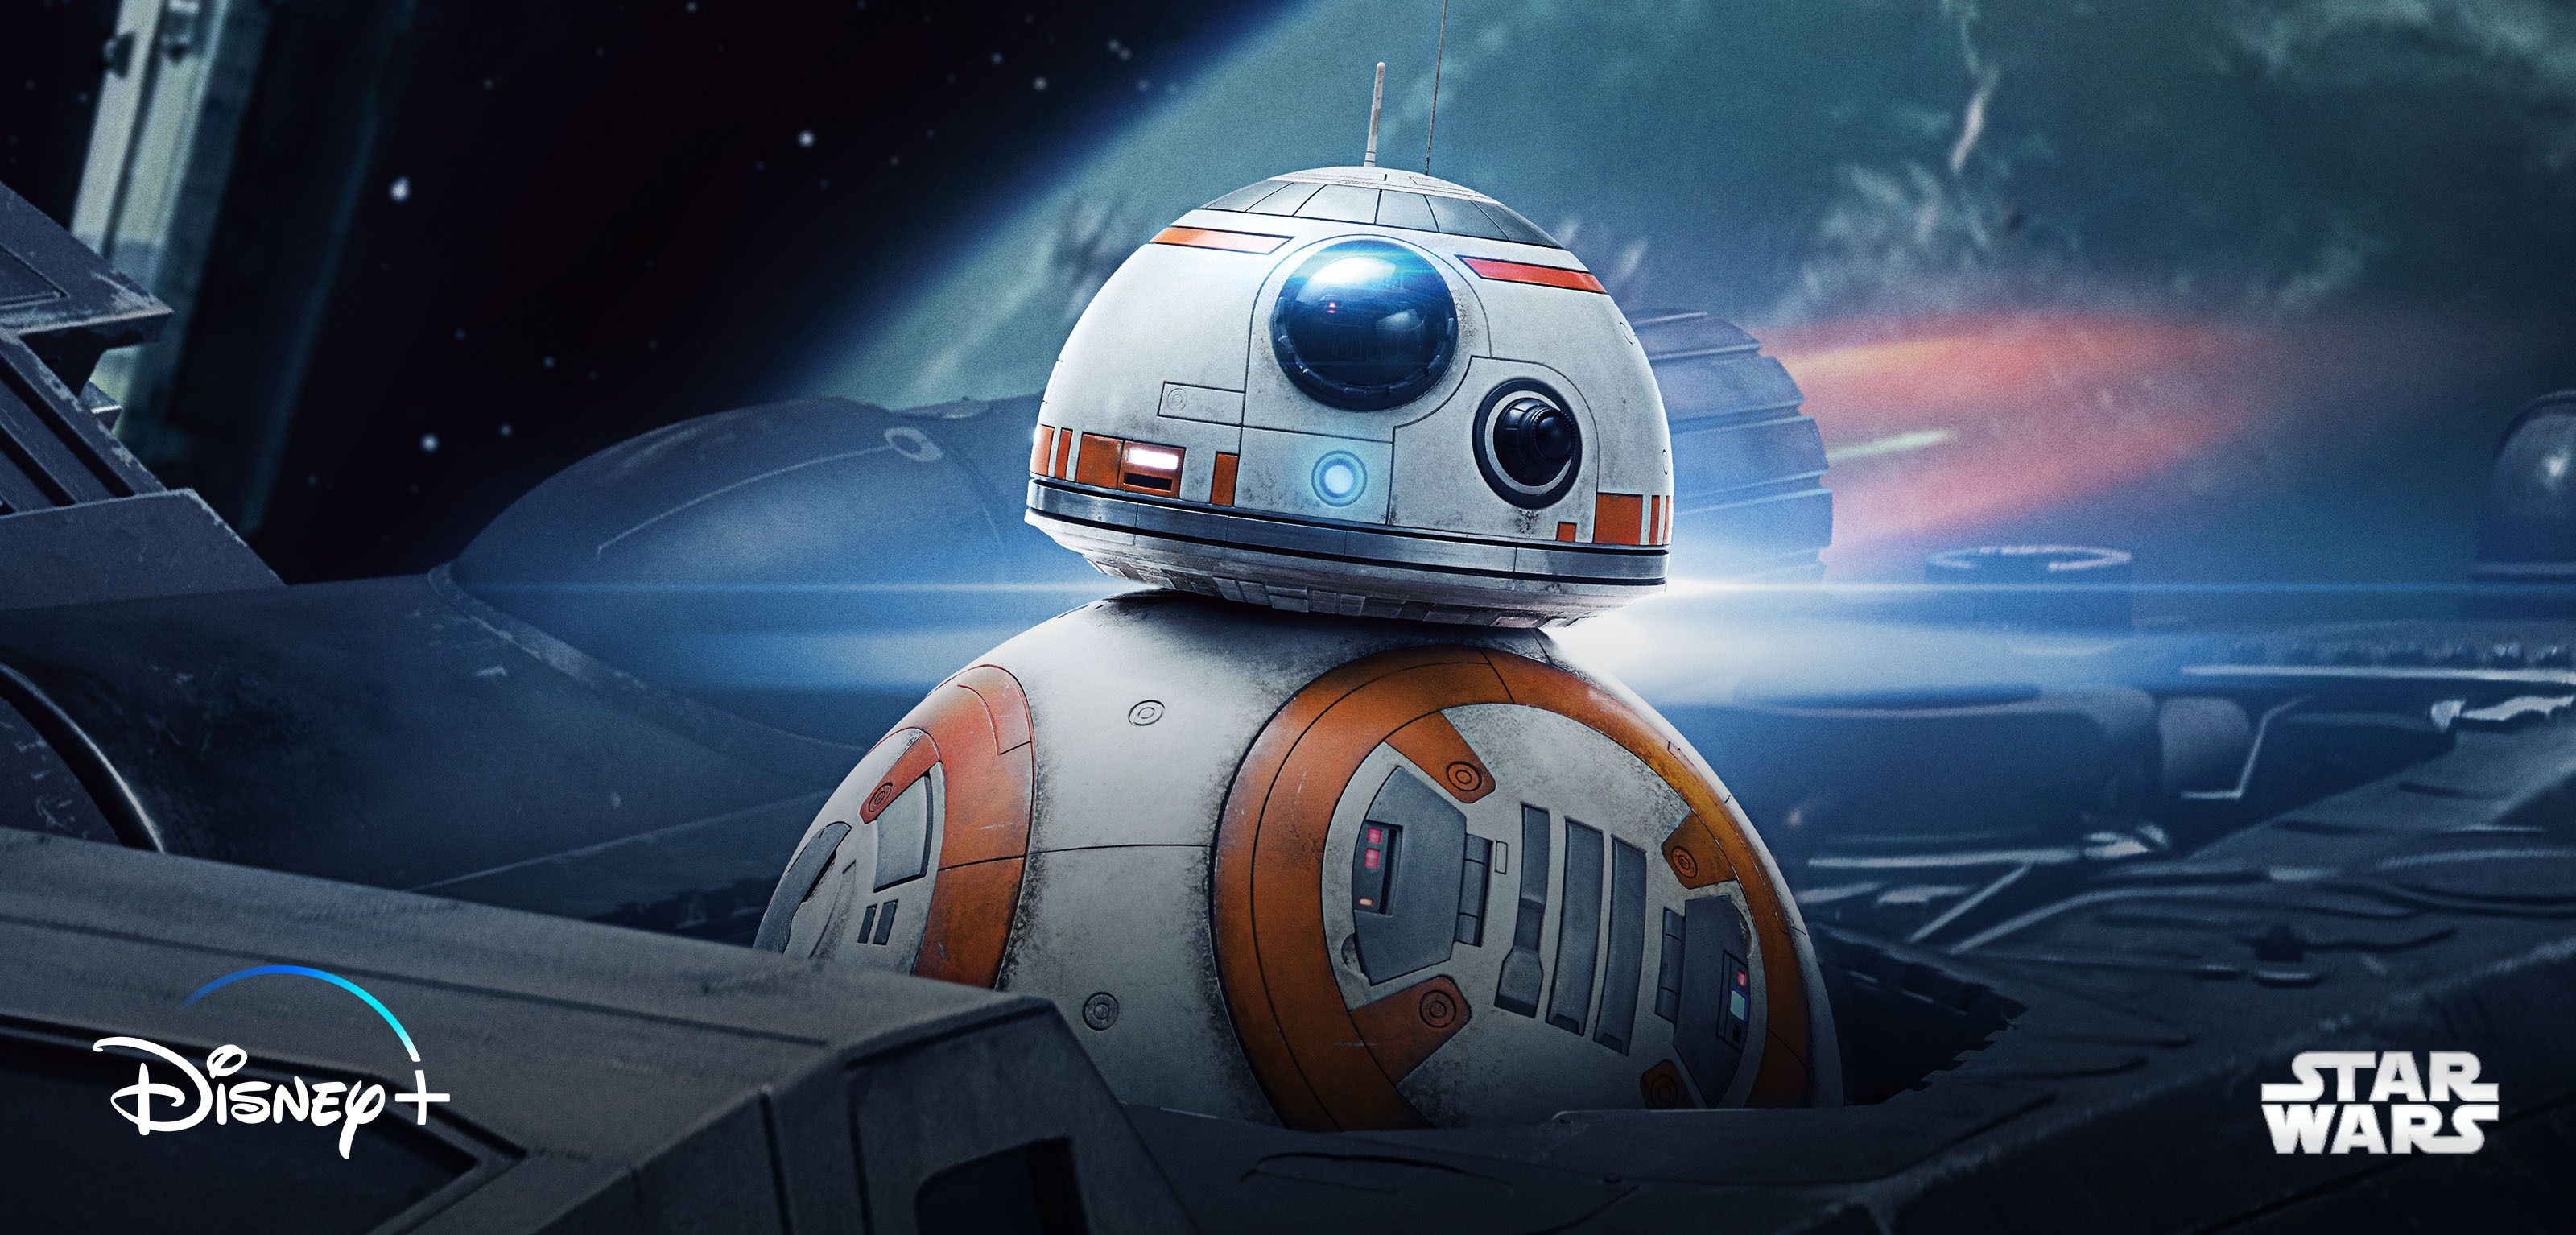 A still of BB-8 from Star Wars